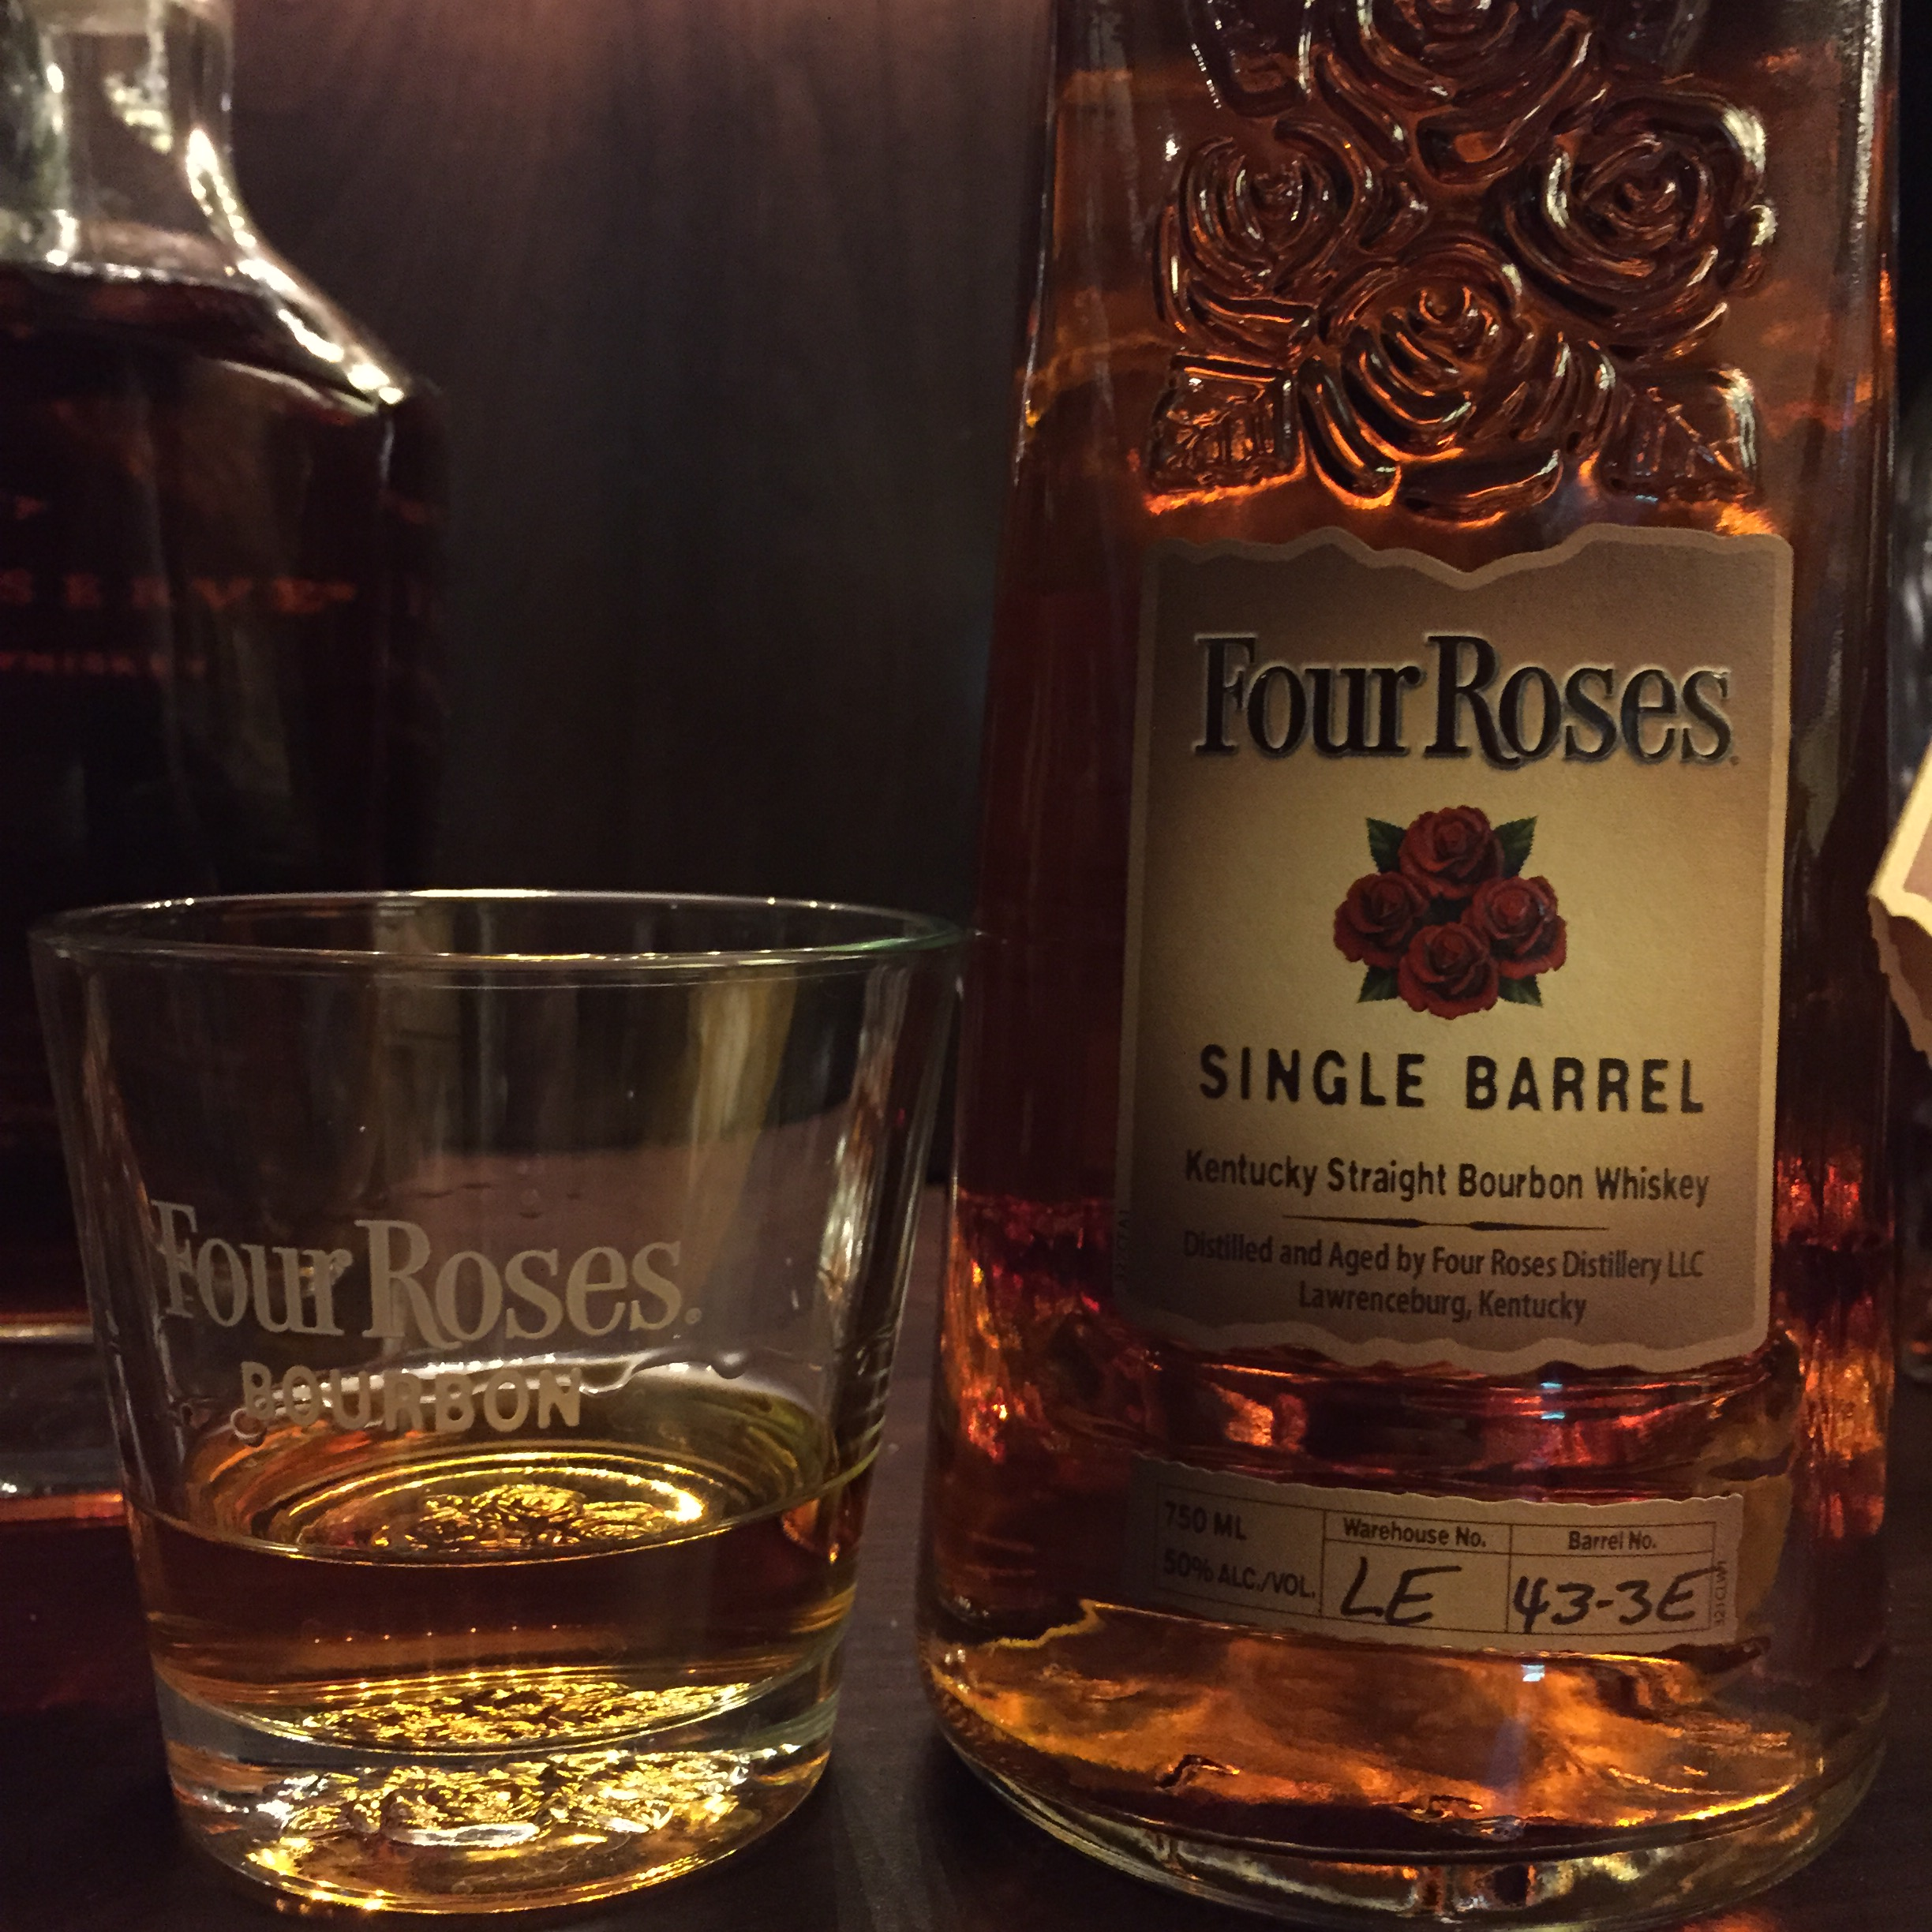 Review: Four Roses Single Barrel